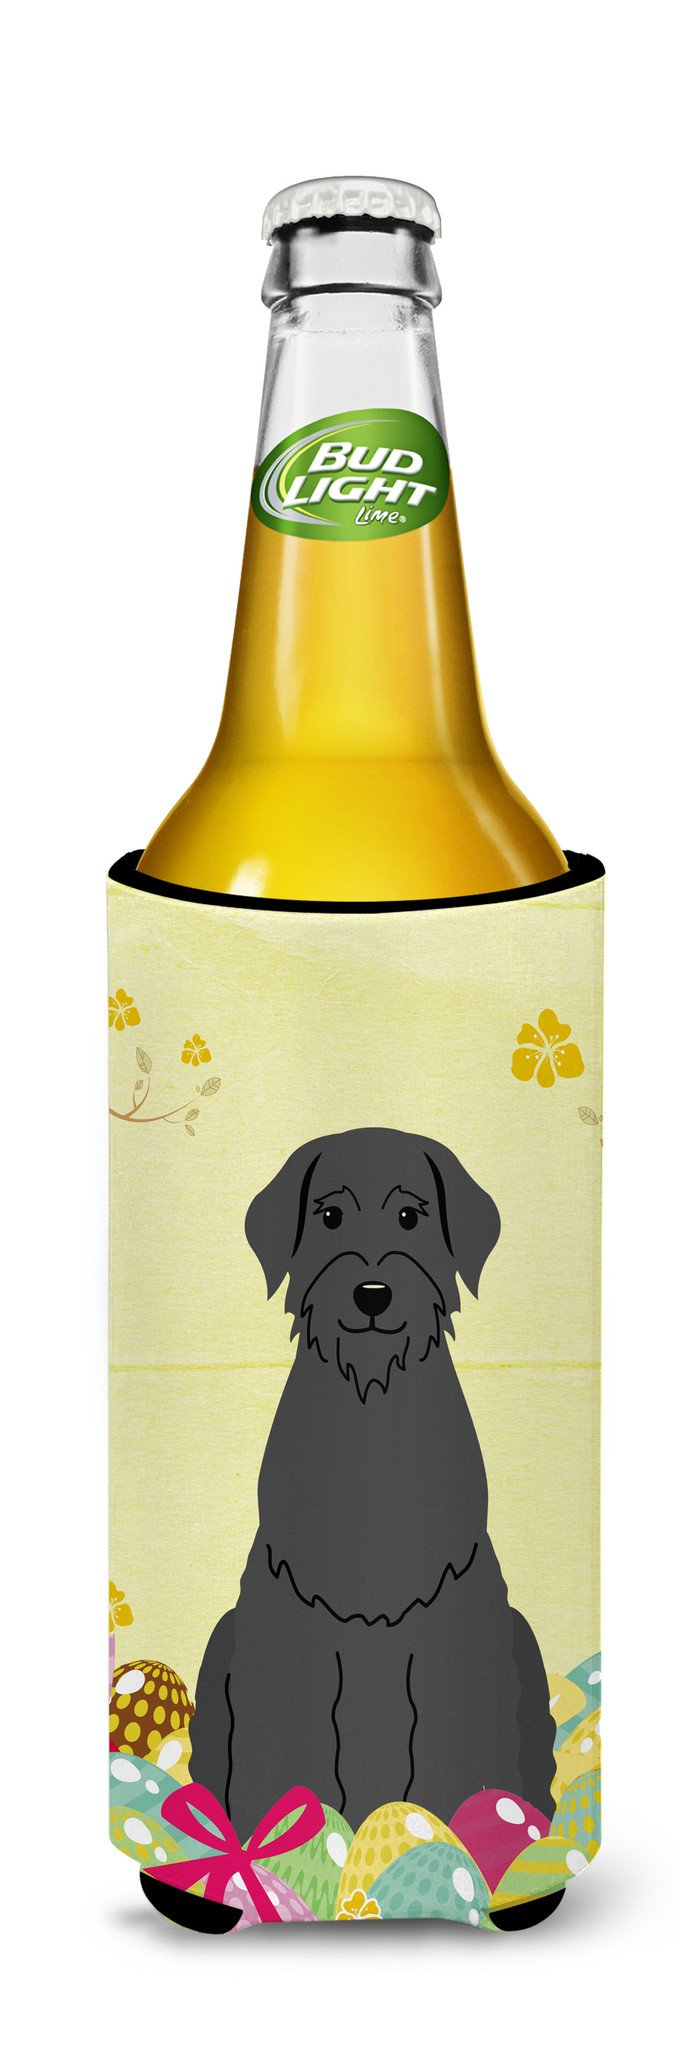 Easter Eggs Giant Schnauzer Michelob Ultra Hugger for slim cans BB6066MUK by Caroline's Treasures